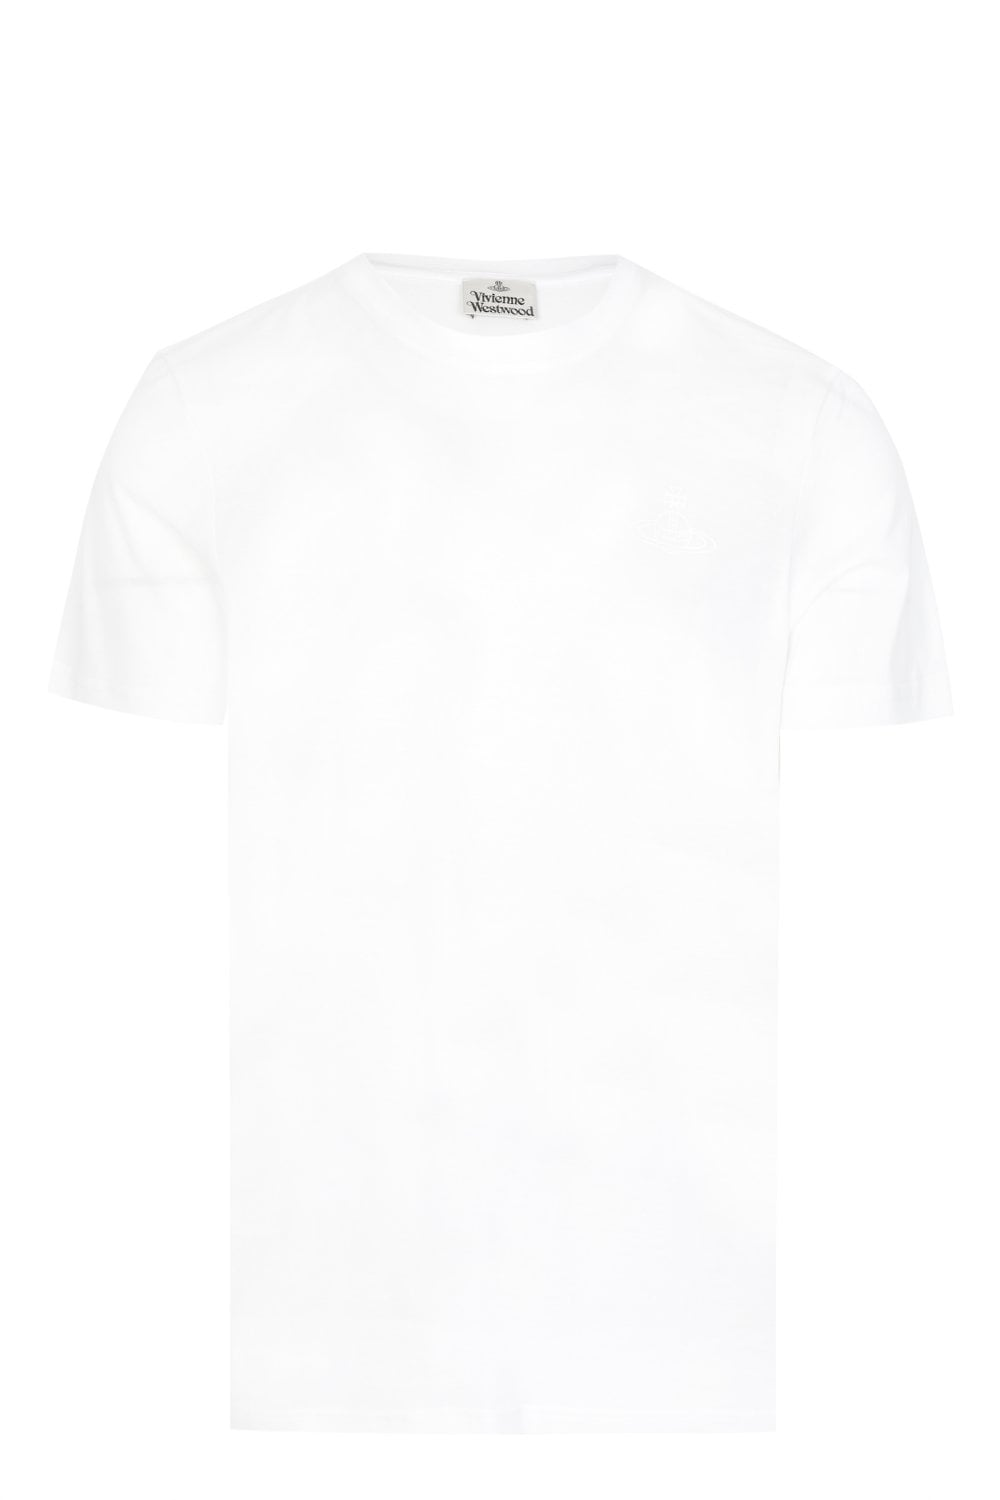 b9bc03e930 VIVIENNE WESTWOOD Vivienne Westwood Logo T-shirt - Clothing from ...